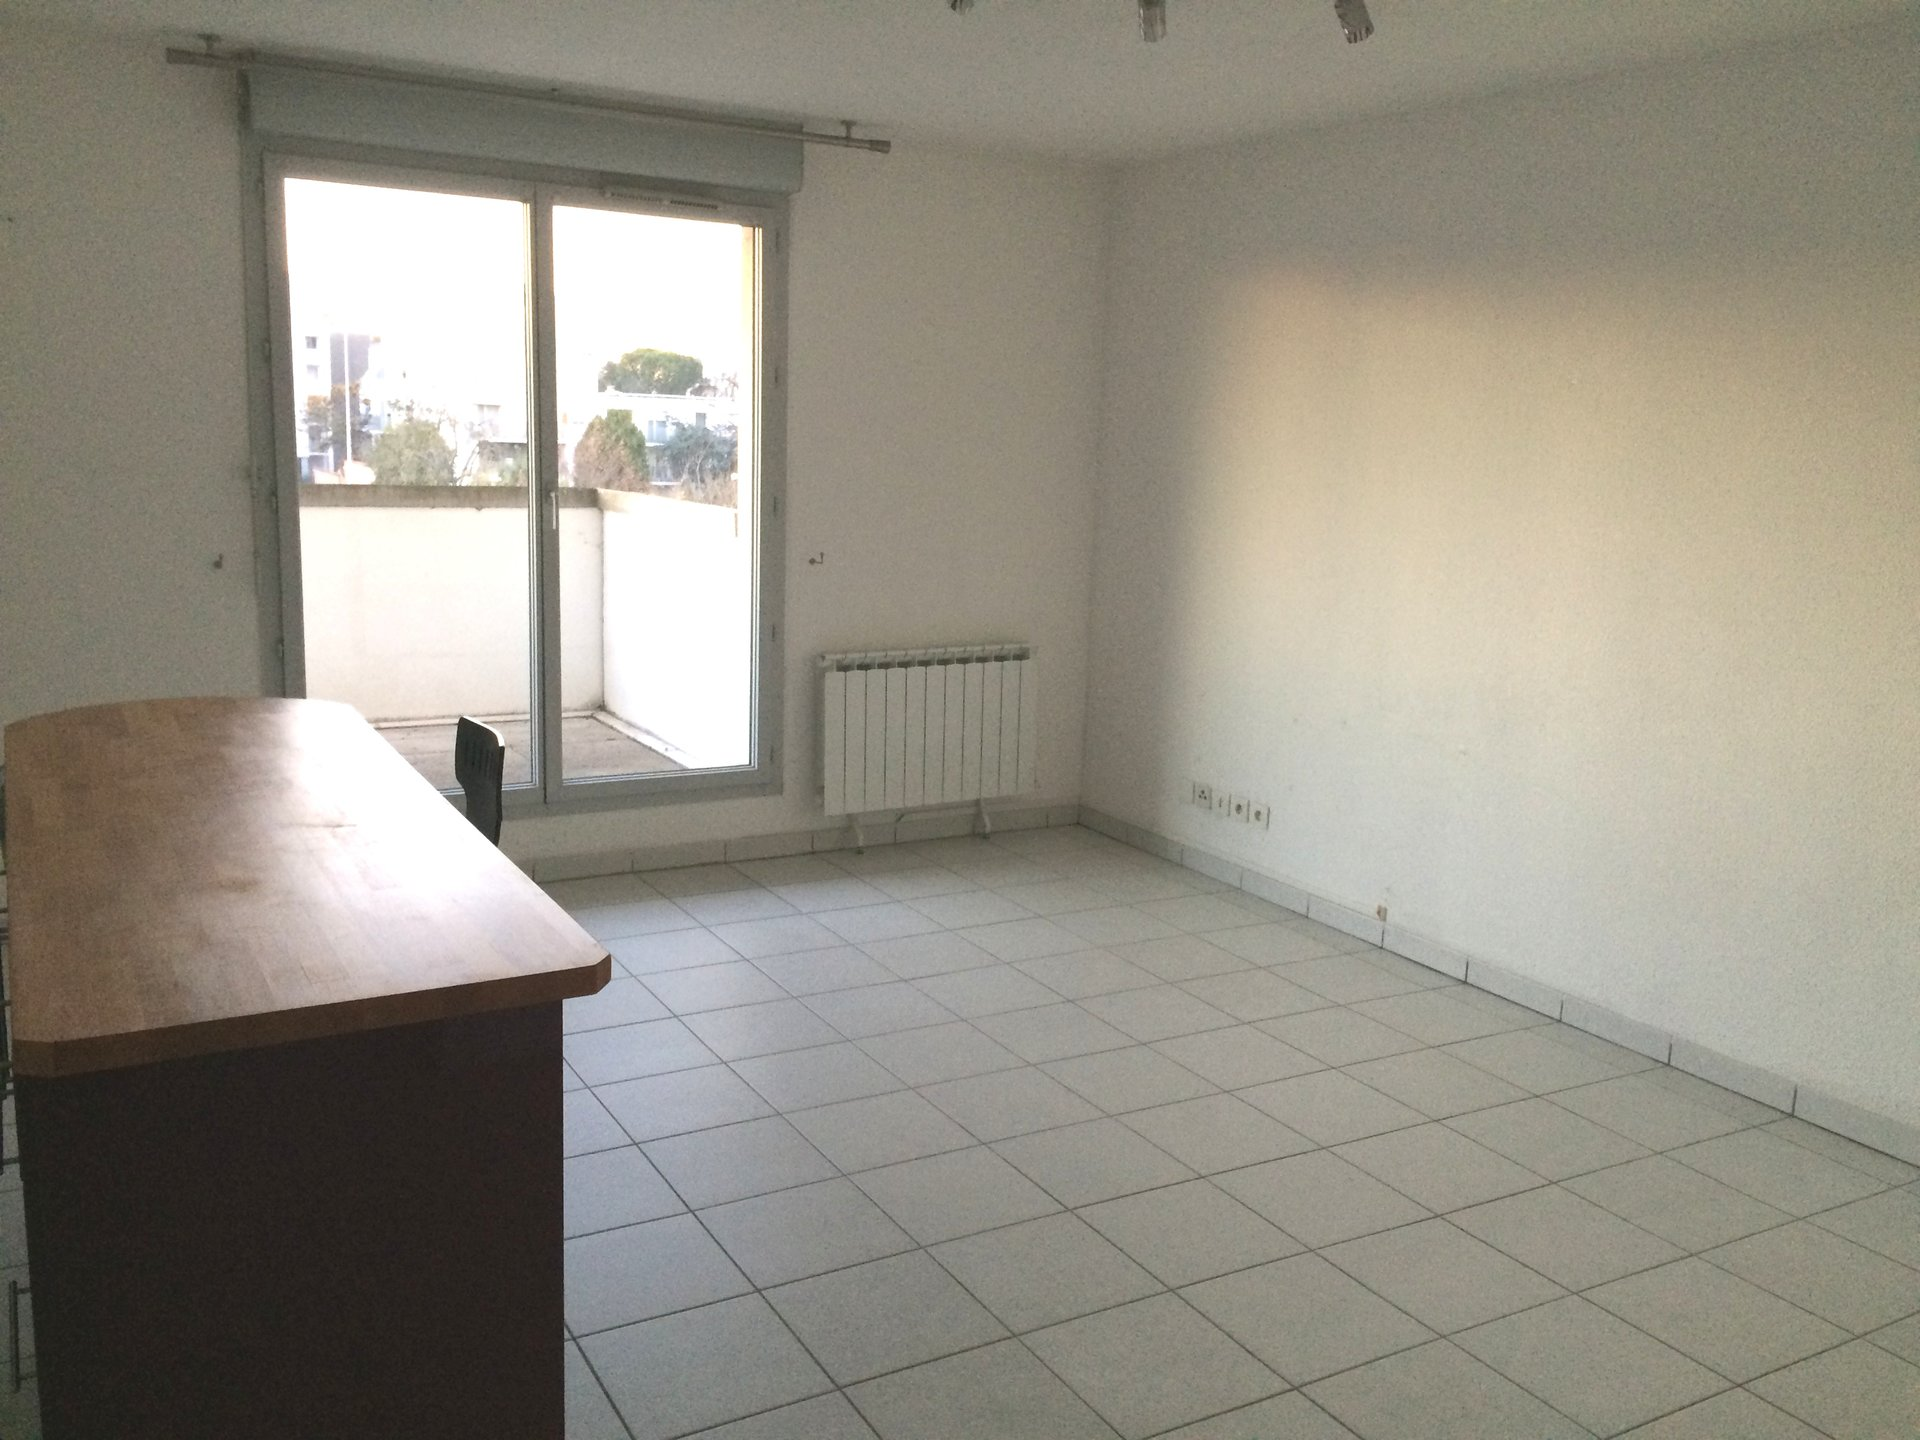 Appartement T2 - 37 m² - TOULOUSE ROUTE DE SEYSSES